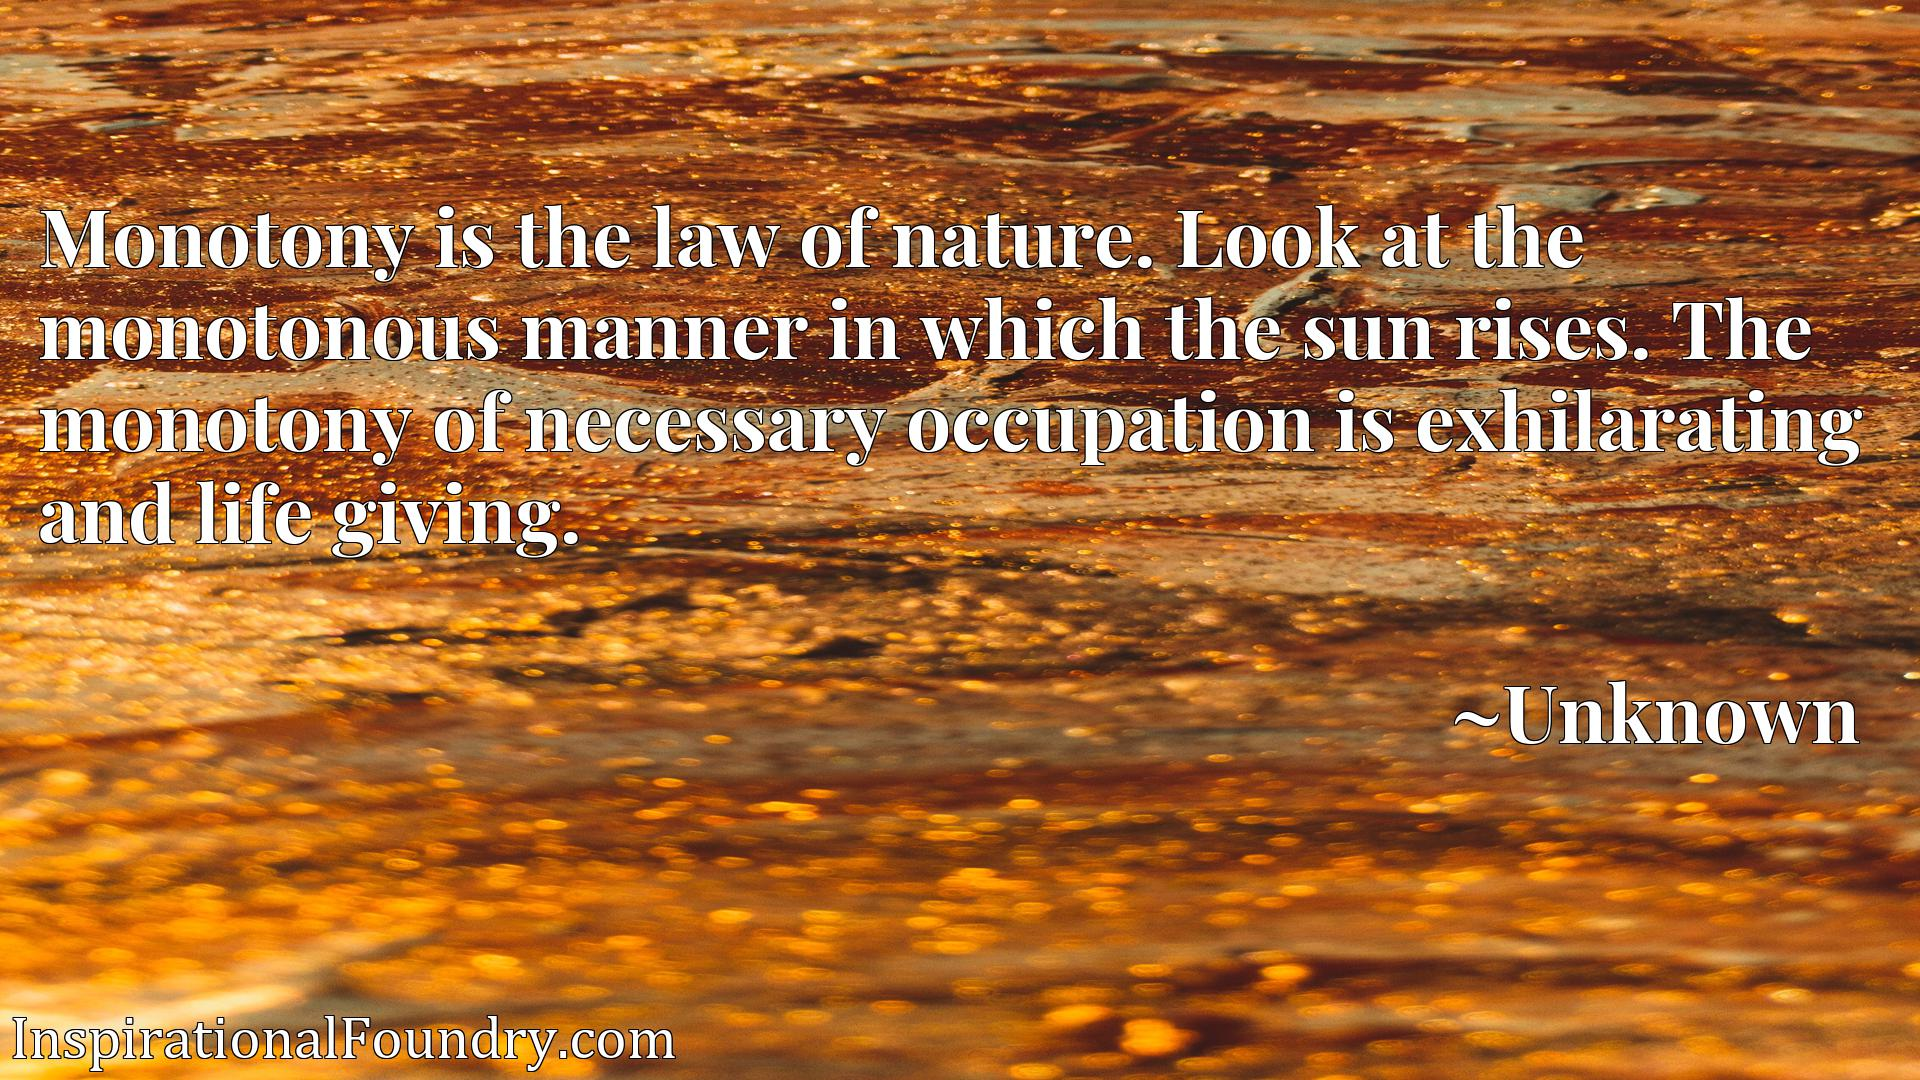 Monotony is the law of nature. Look at the monotonous manner in which the sun rises. The monotony of necessary occupation is exhilarating and life giving.